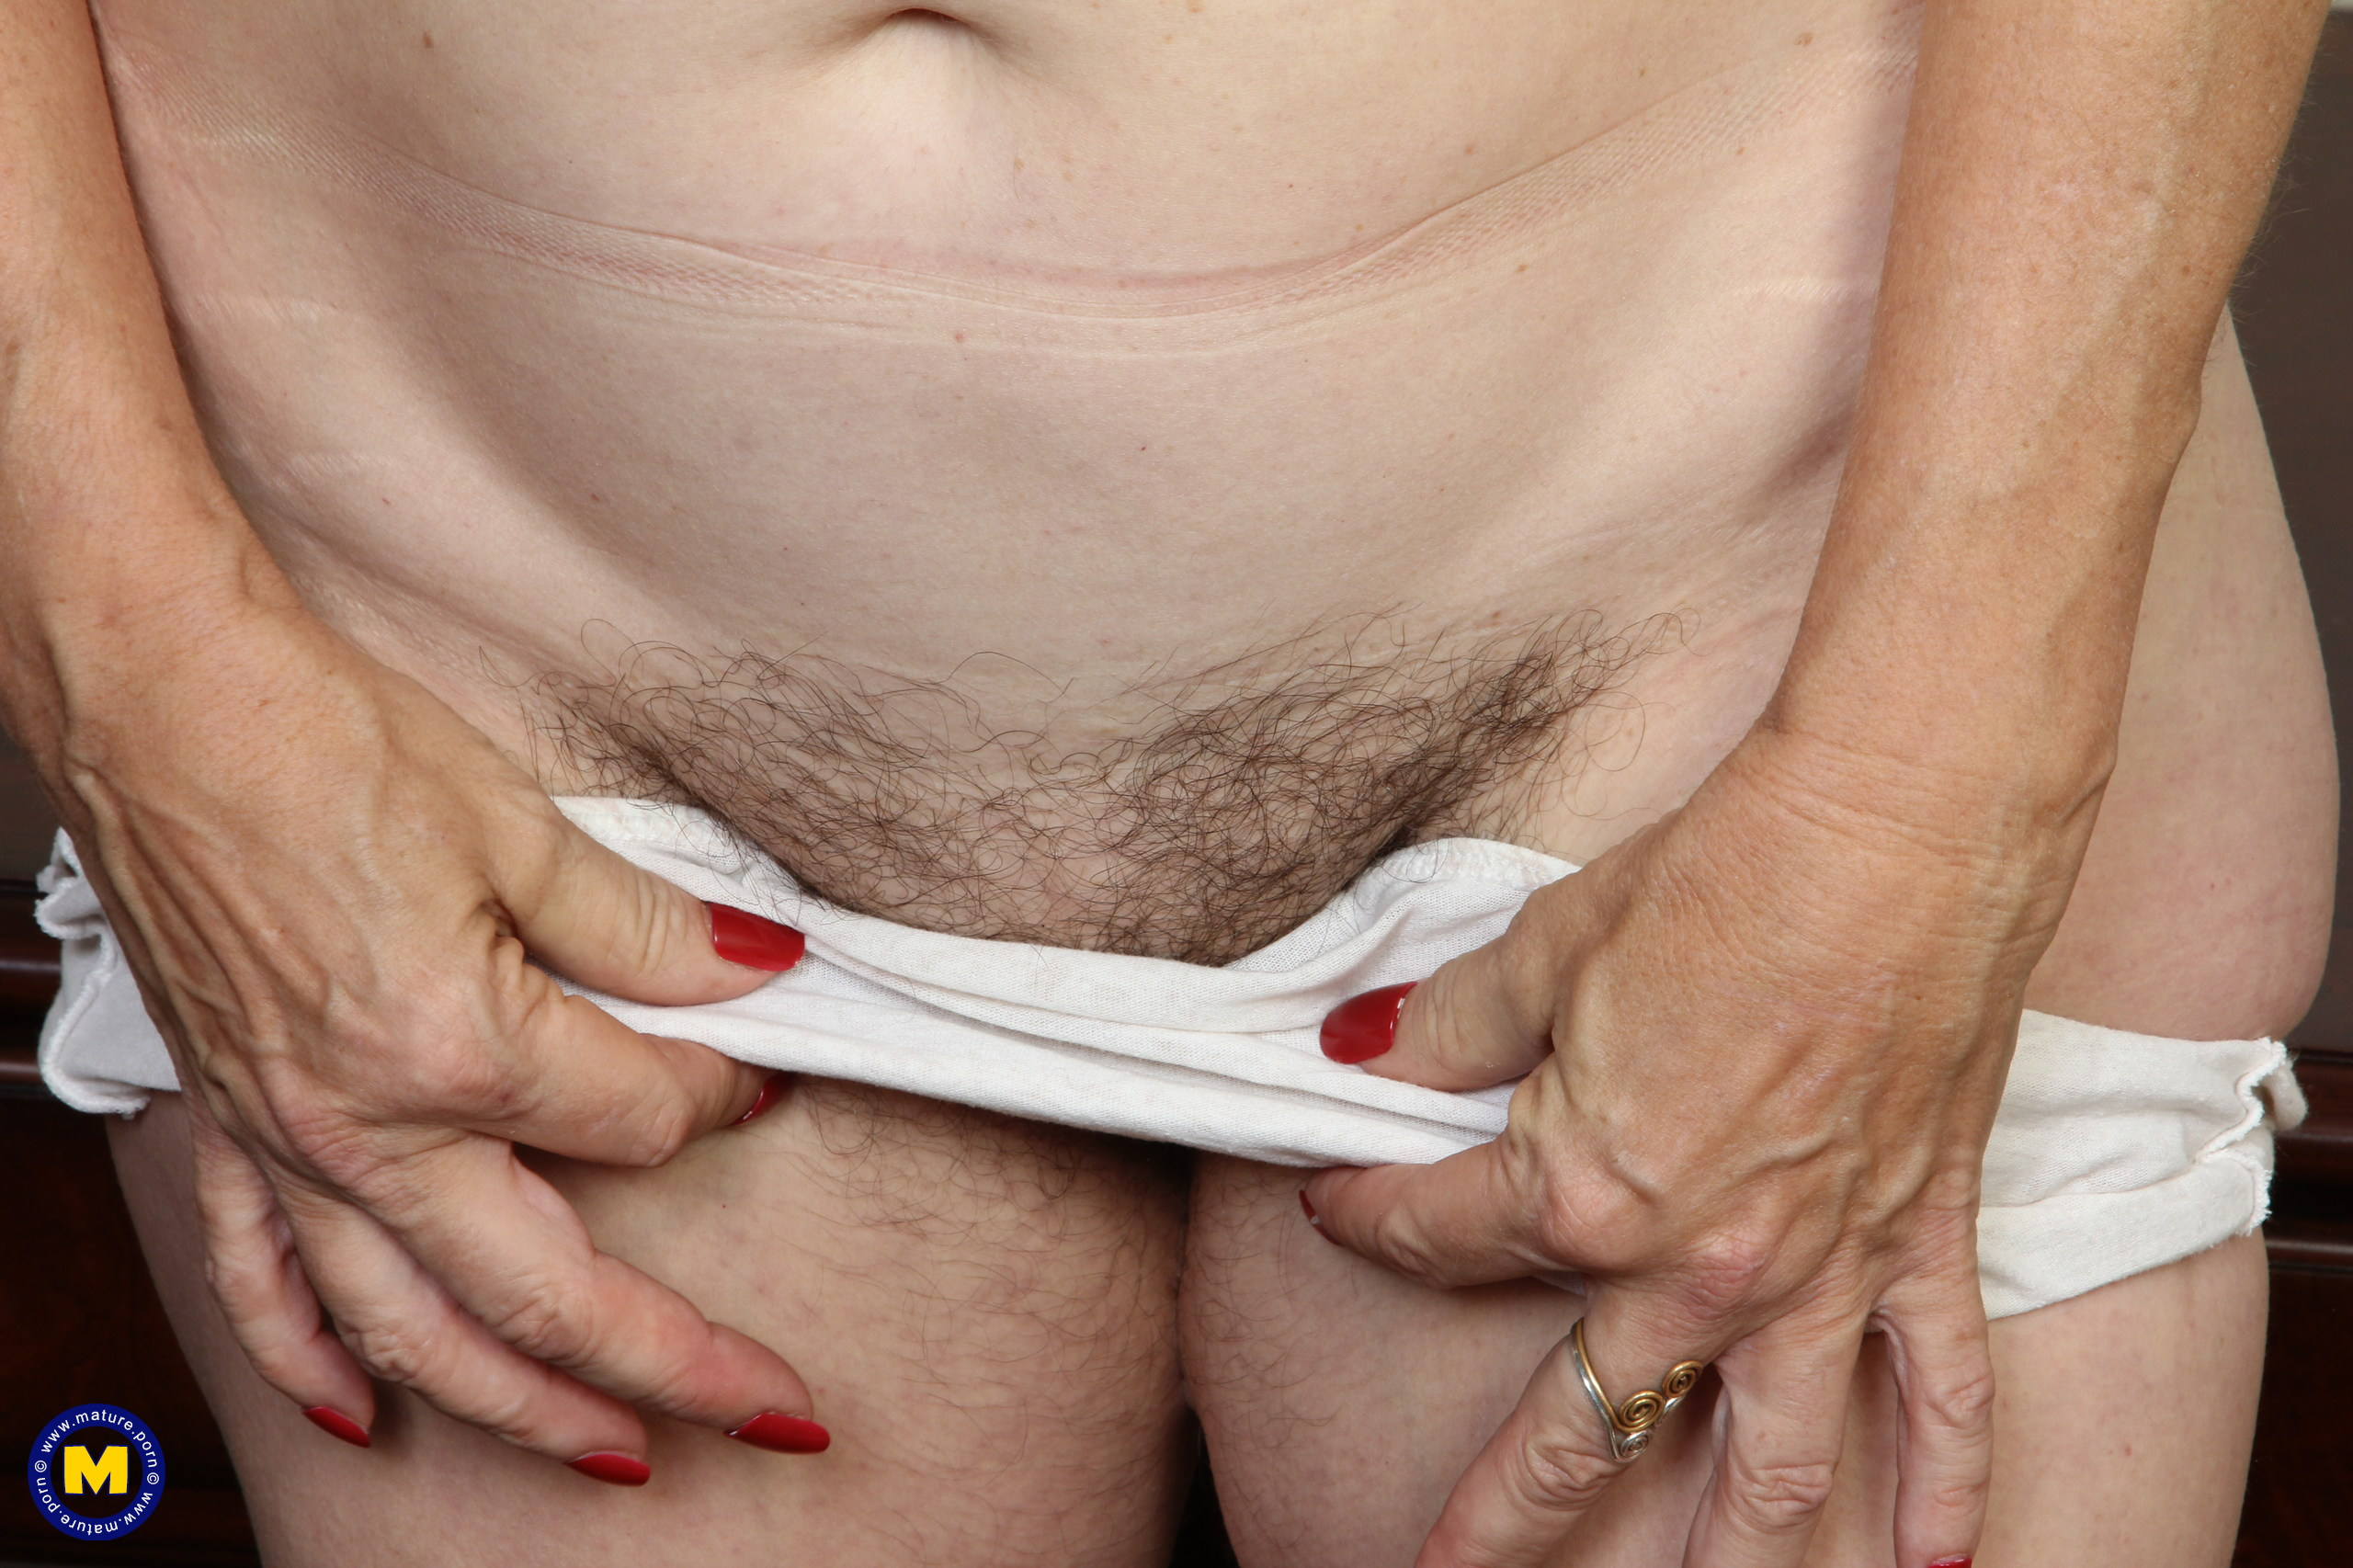 kinky american mature wife exposing her panties and wet slit inside her home office #1